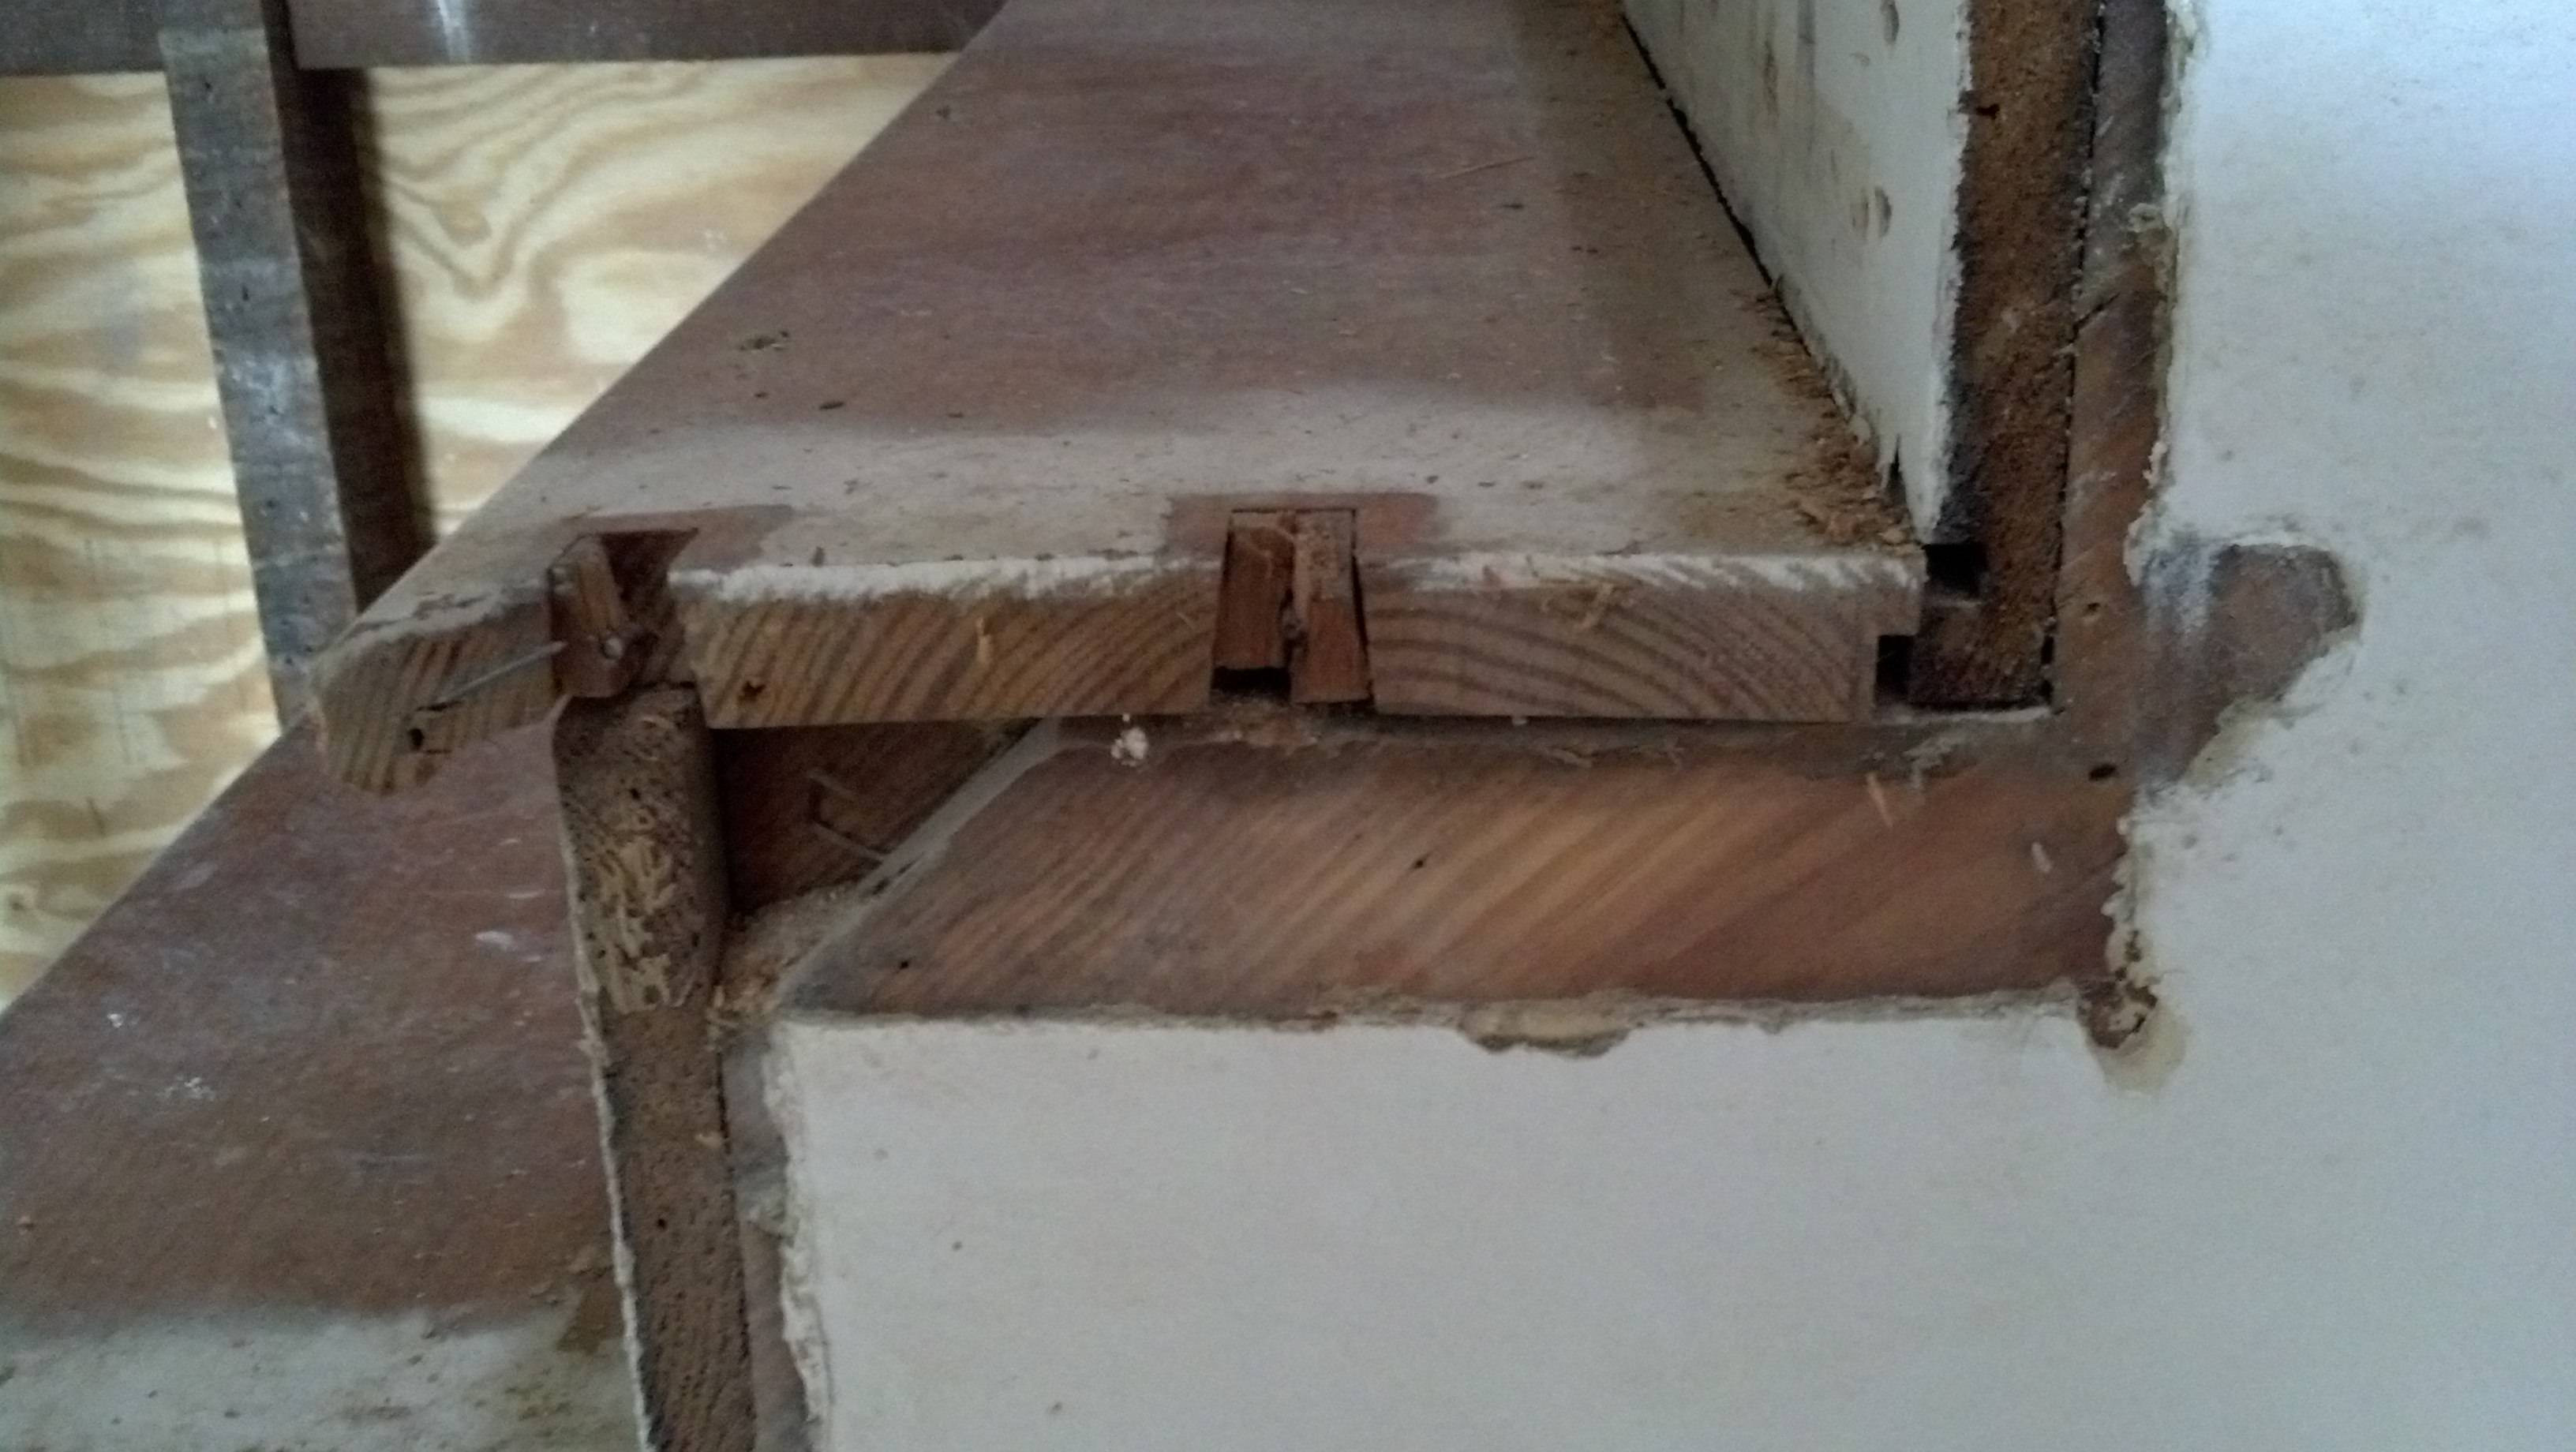 23 Perfect M W Hardwood Flooring 2021 free download m w hardwood flooring of how should stair treads and risers be assembled home improvement throughout see picture enter image description here